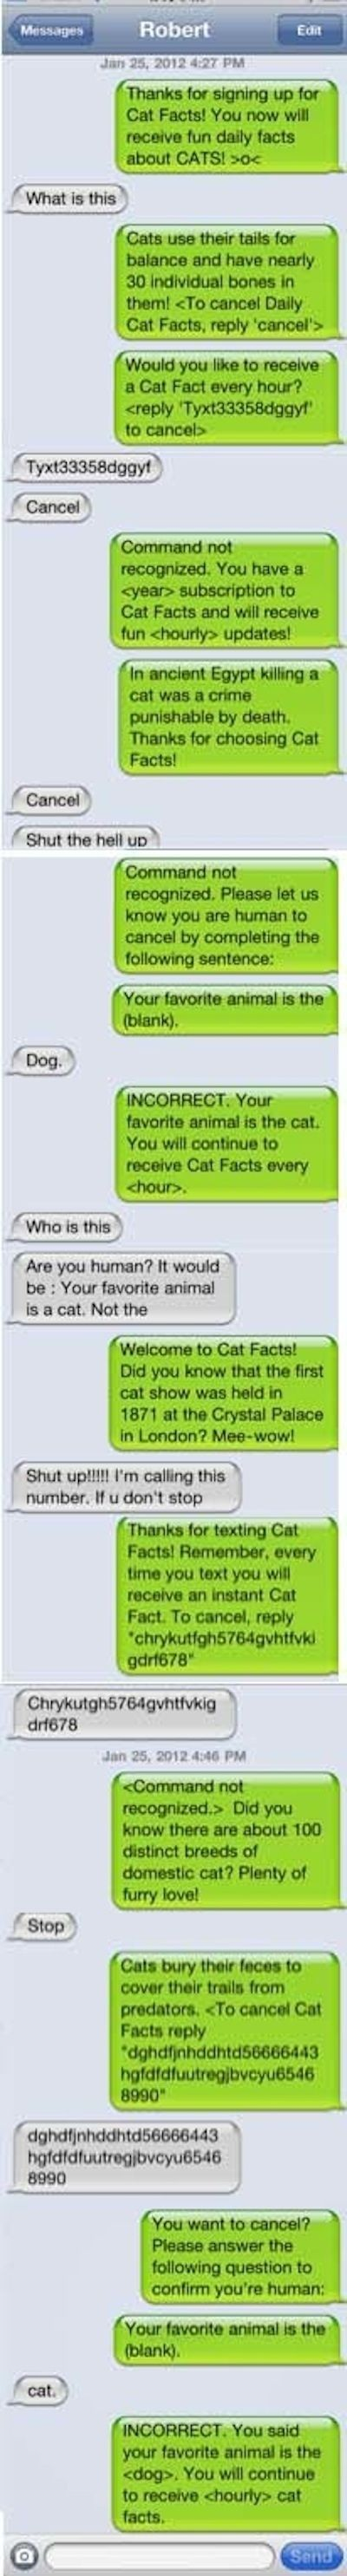 Best funny texts